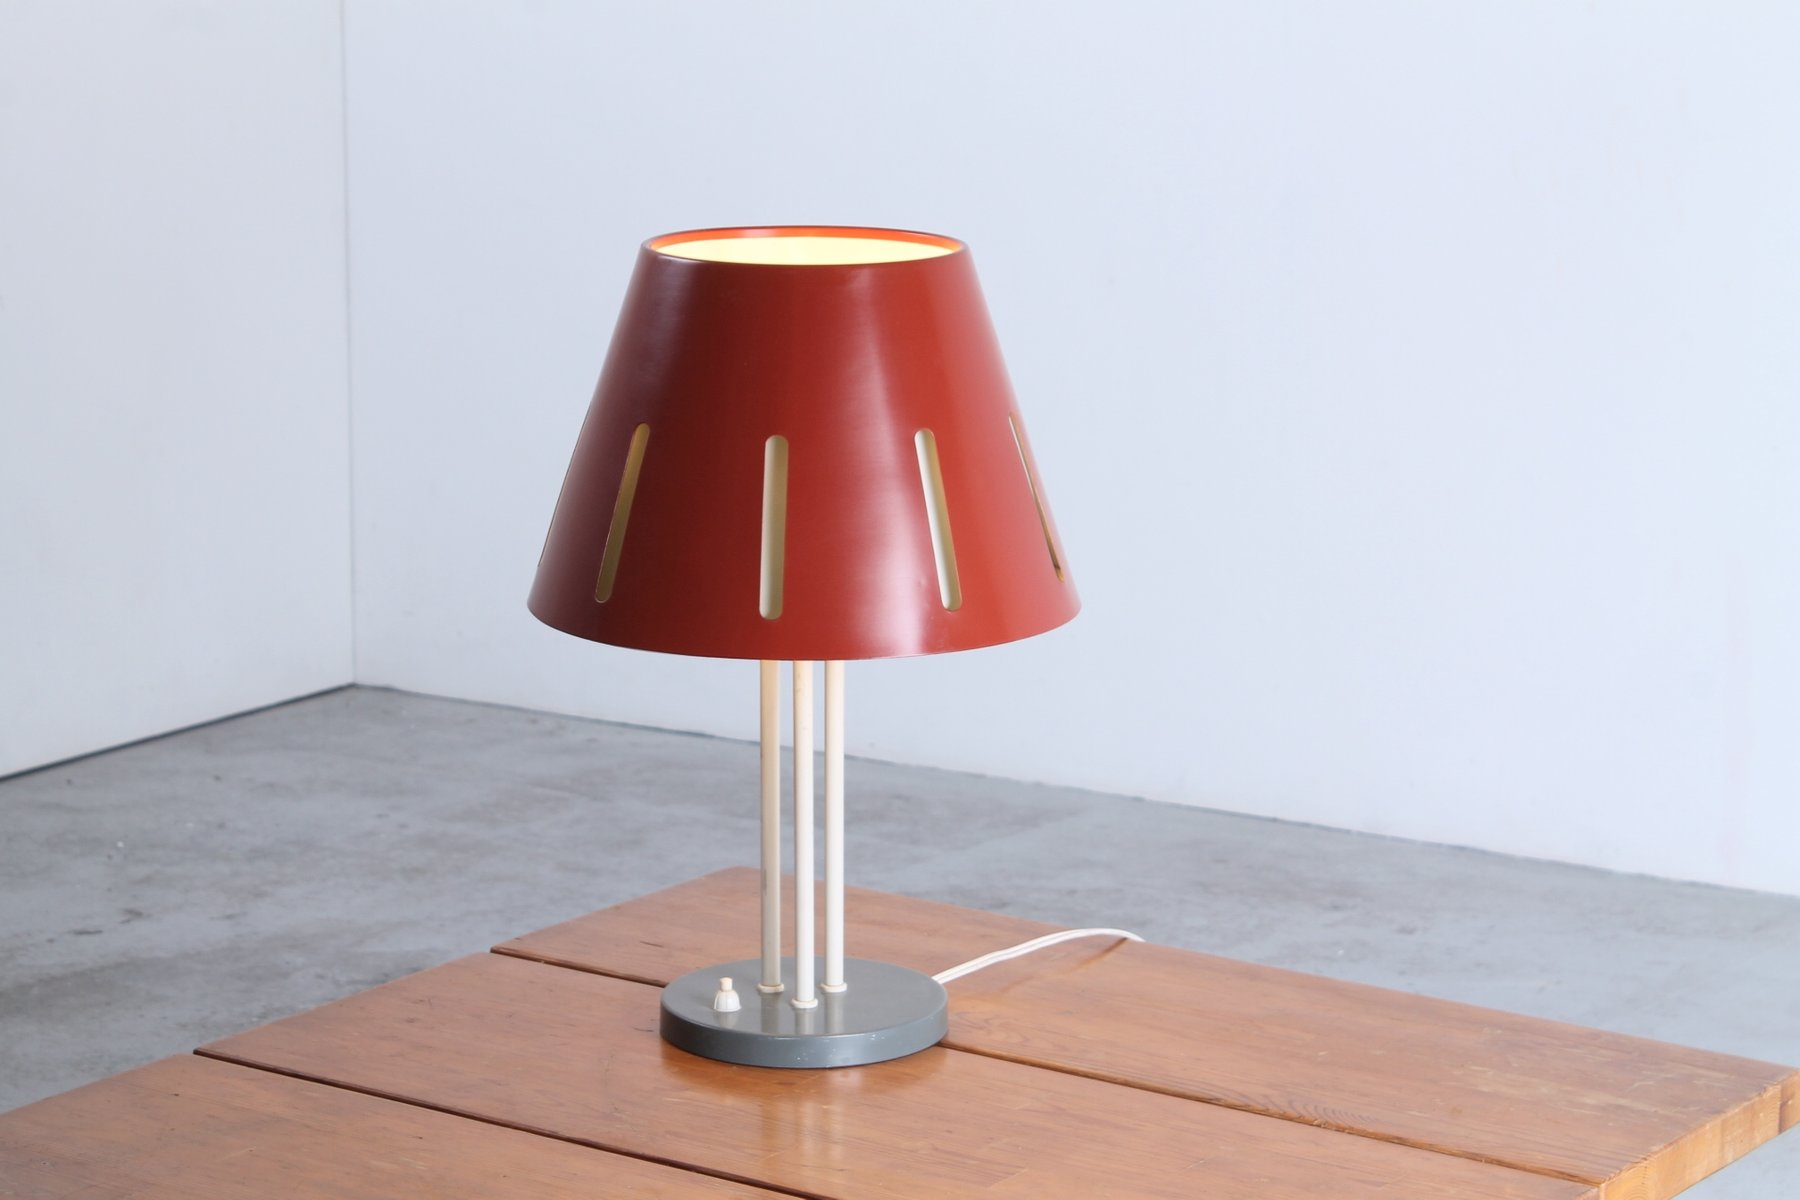 Large sun series red table lamp by h th j a busquet for hala large sun series red table lamp by h th j a busquet for hala geotapseo Gallery